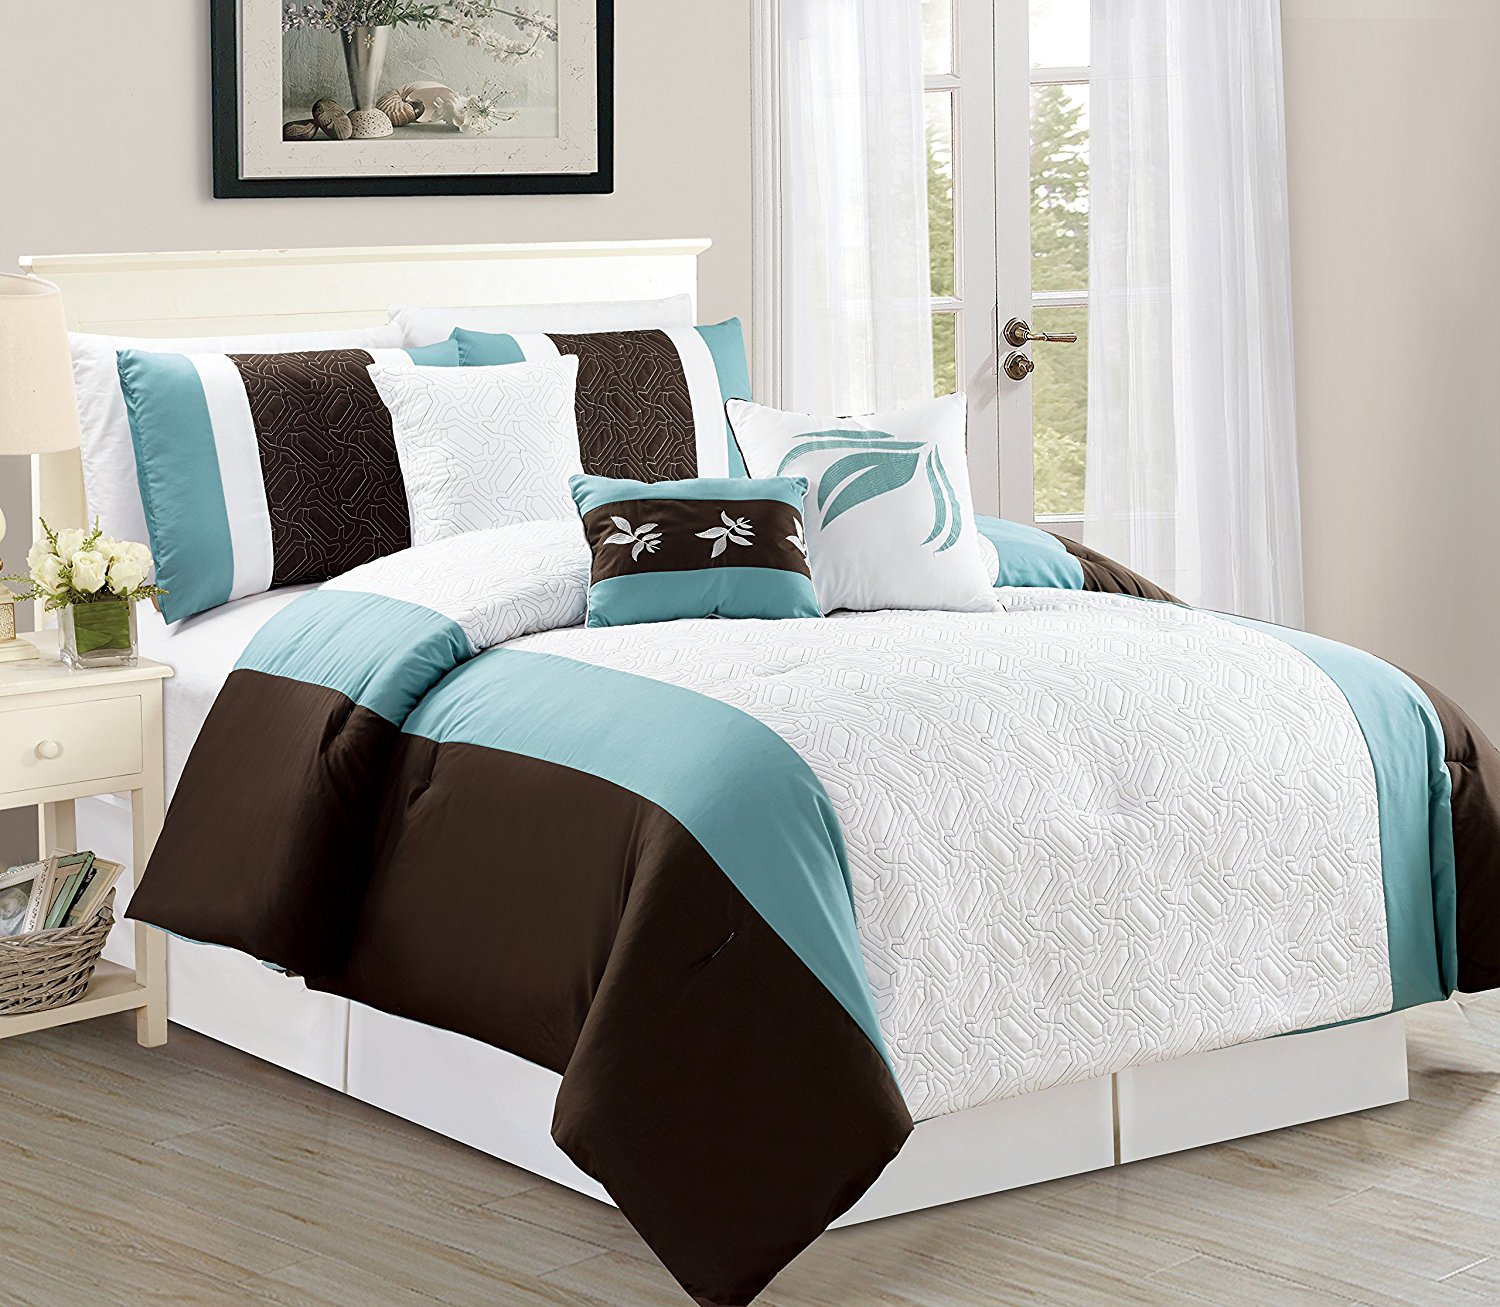 jessamine california king size 7piece embossed comforter bedding set soft oversized bed in a